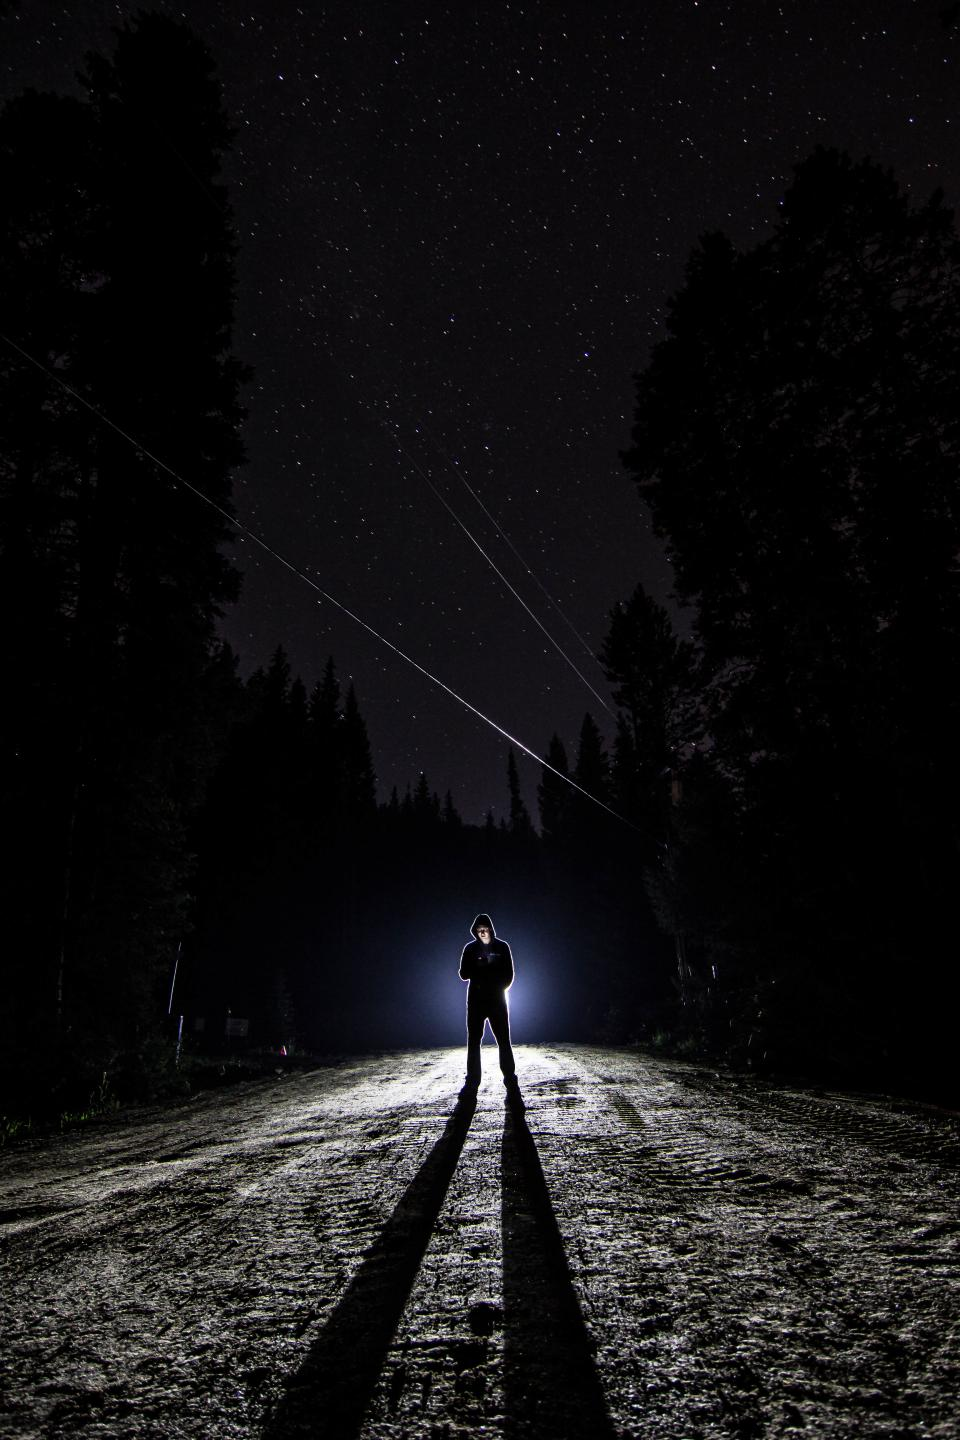 guy man male people stand light shadow silhouette spotlight path road dirt soil trees forests night sky stars constellation falling wish